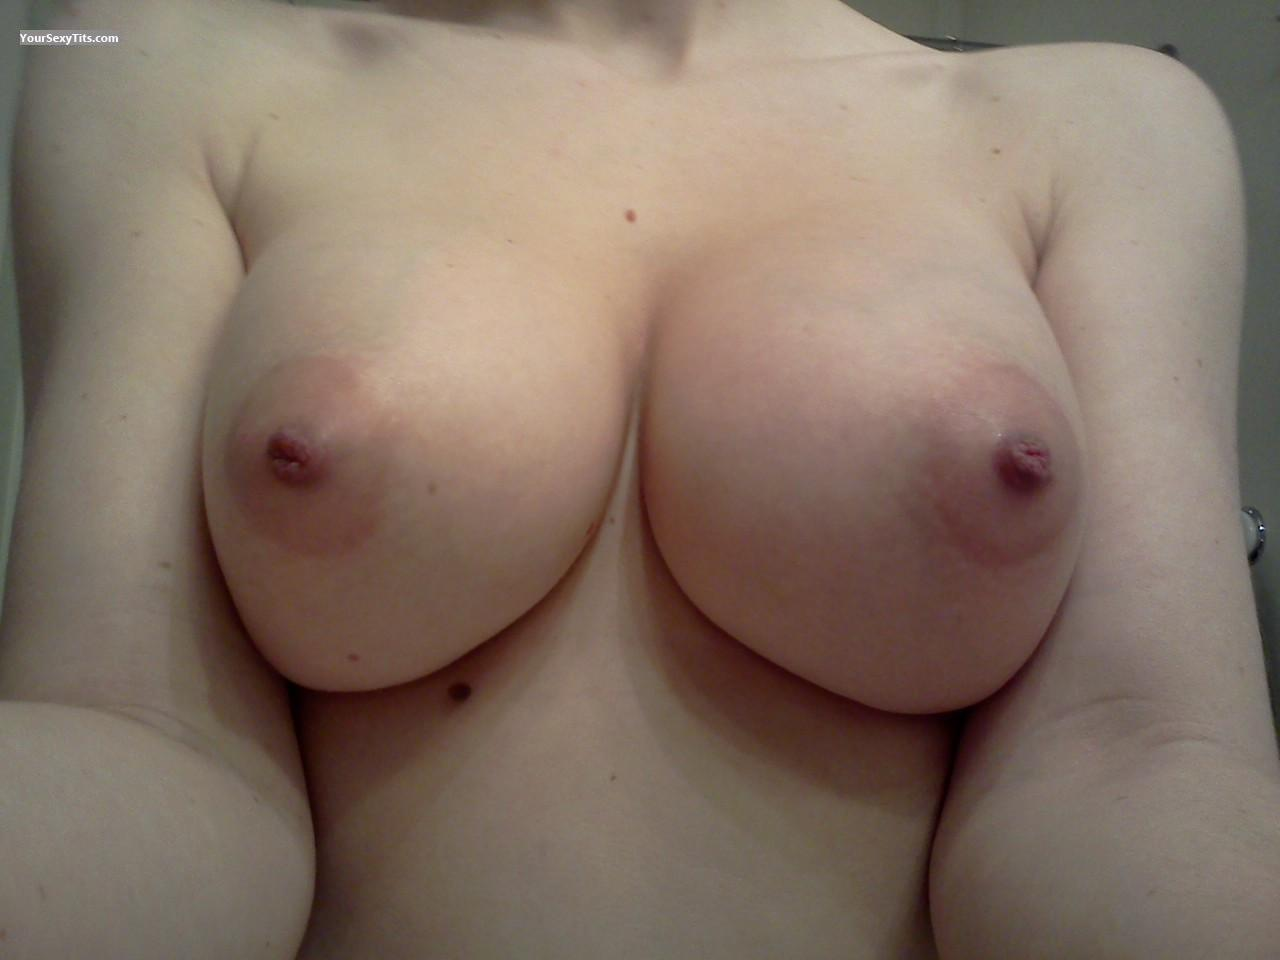 Medium Tits Of My Wife Selfie by Naughty Girl